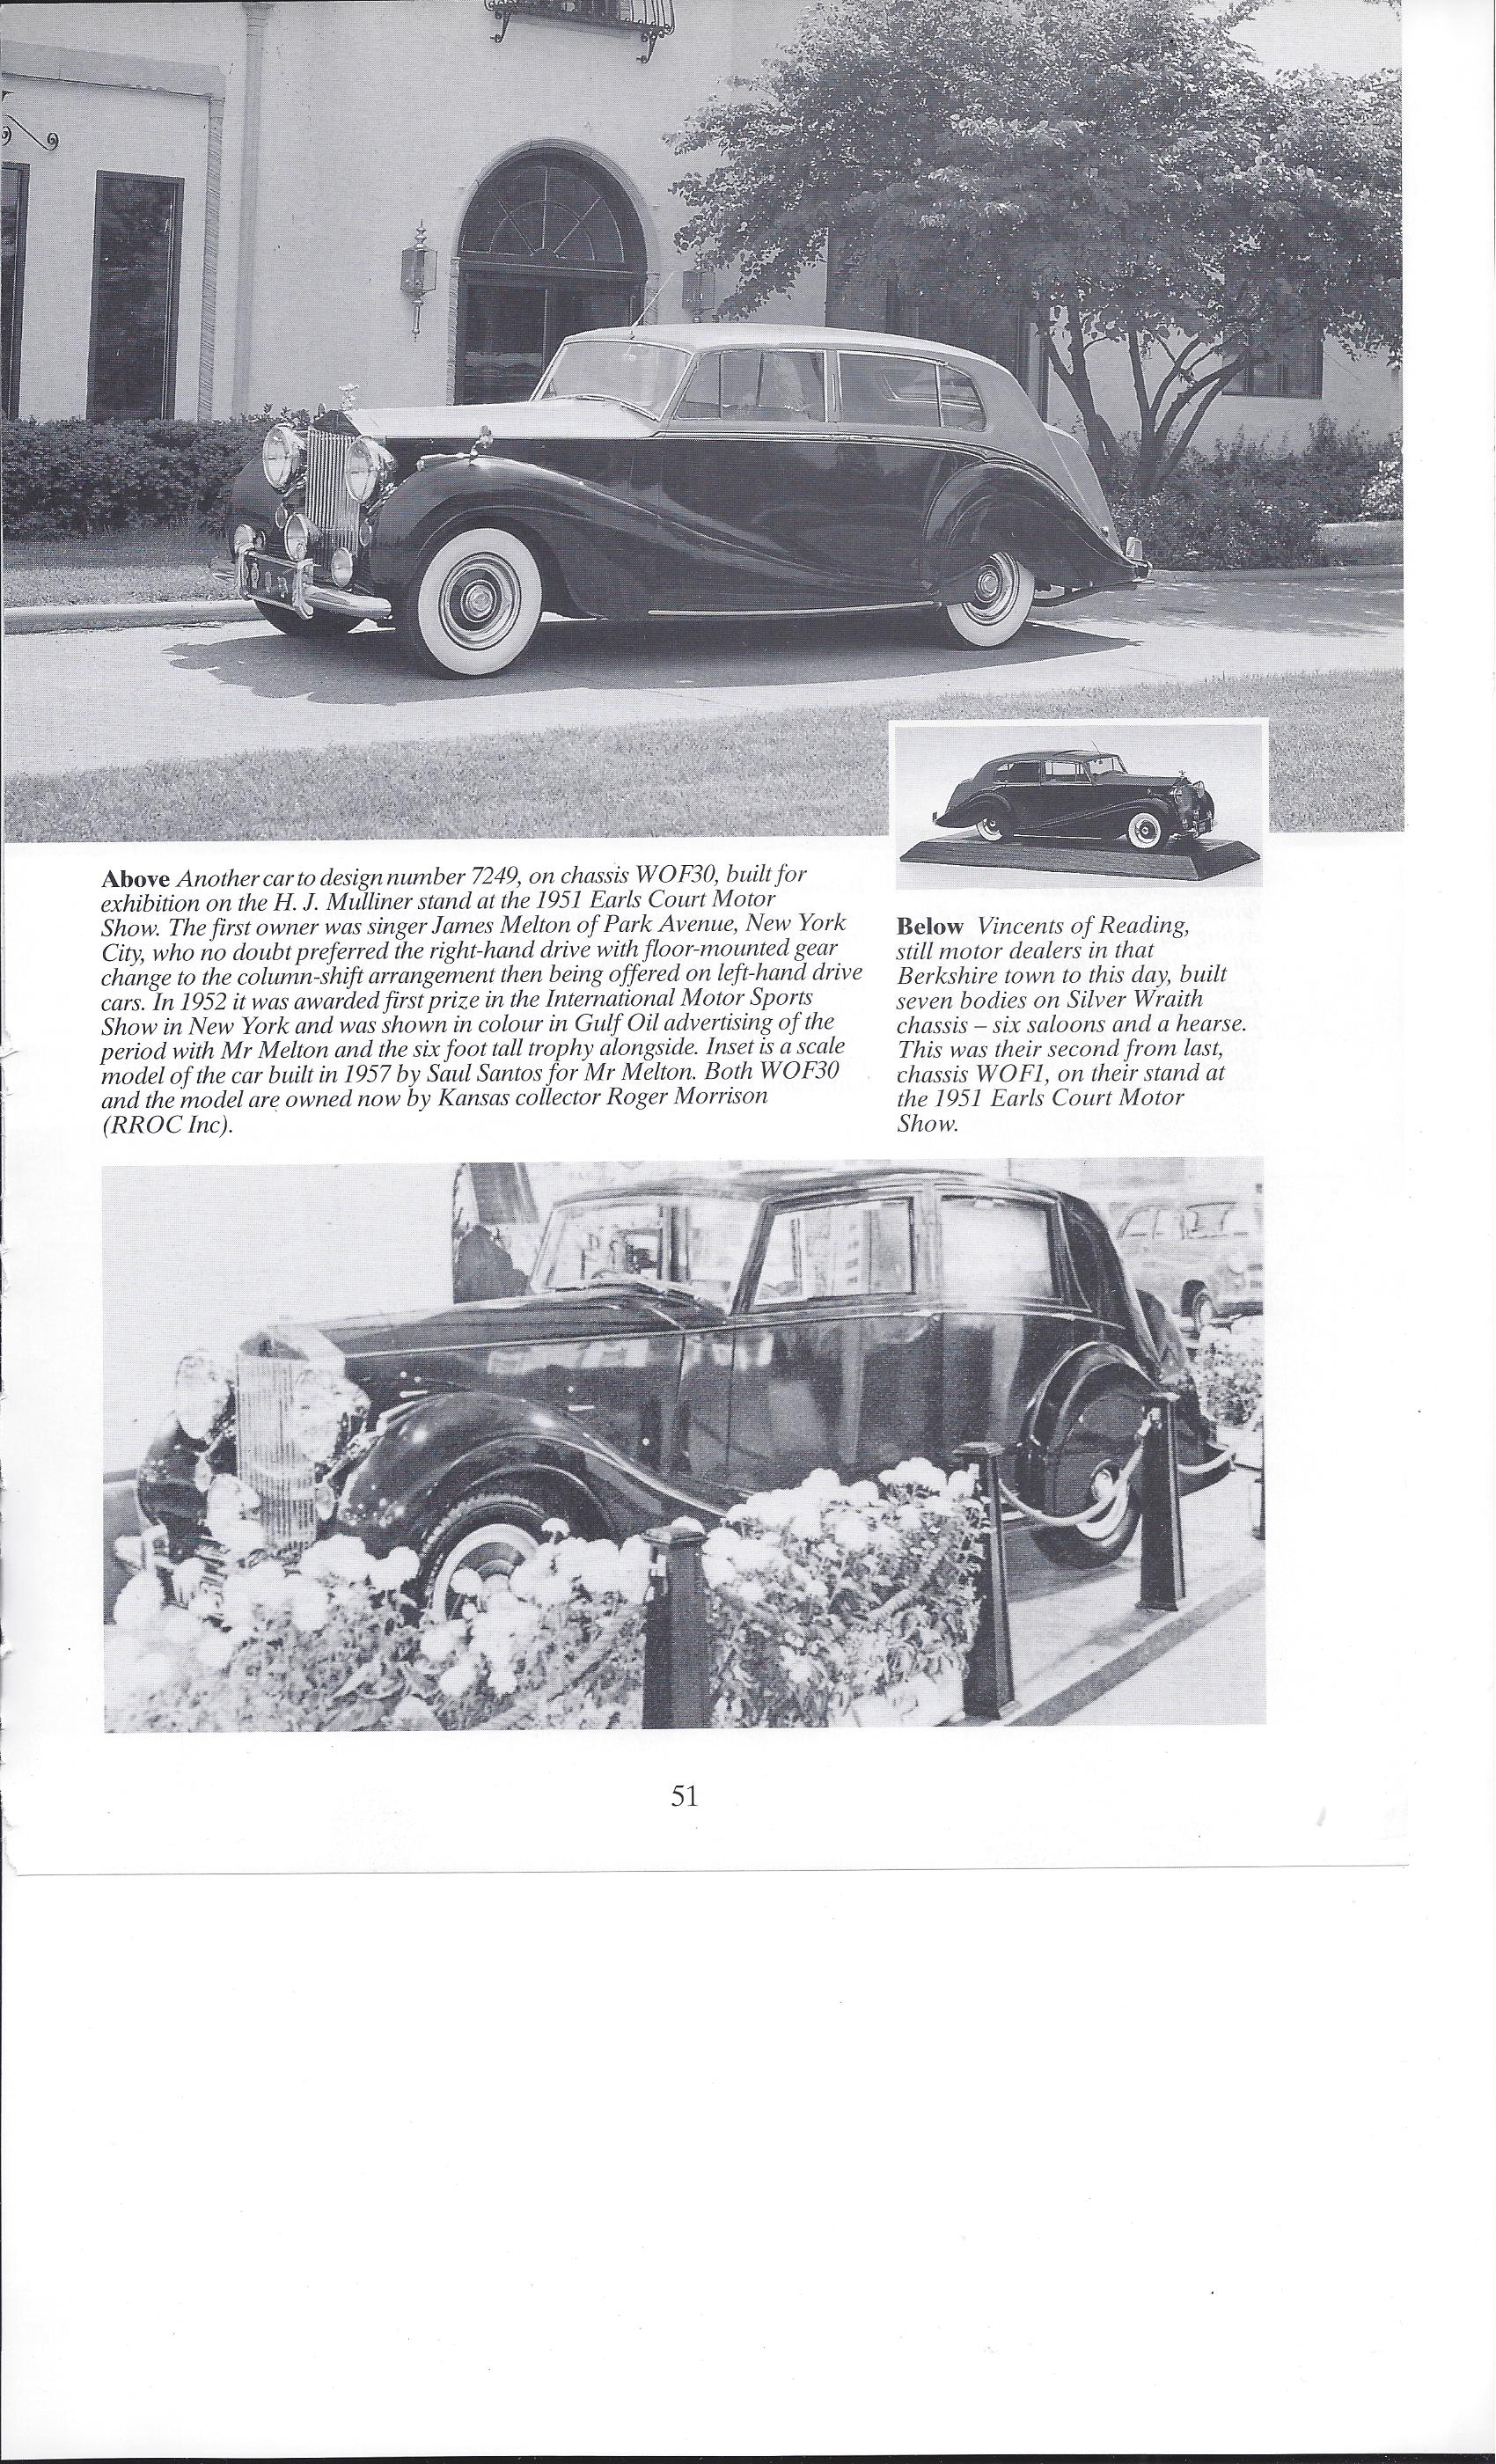 1951 Rolls Royce Silver Wraith WOF1 seen in a vintage photograph in the Earls Court Auto Show catalogue